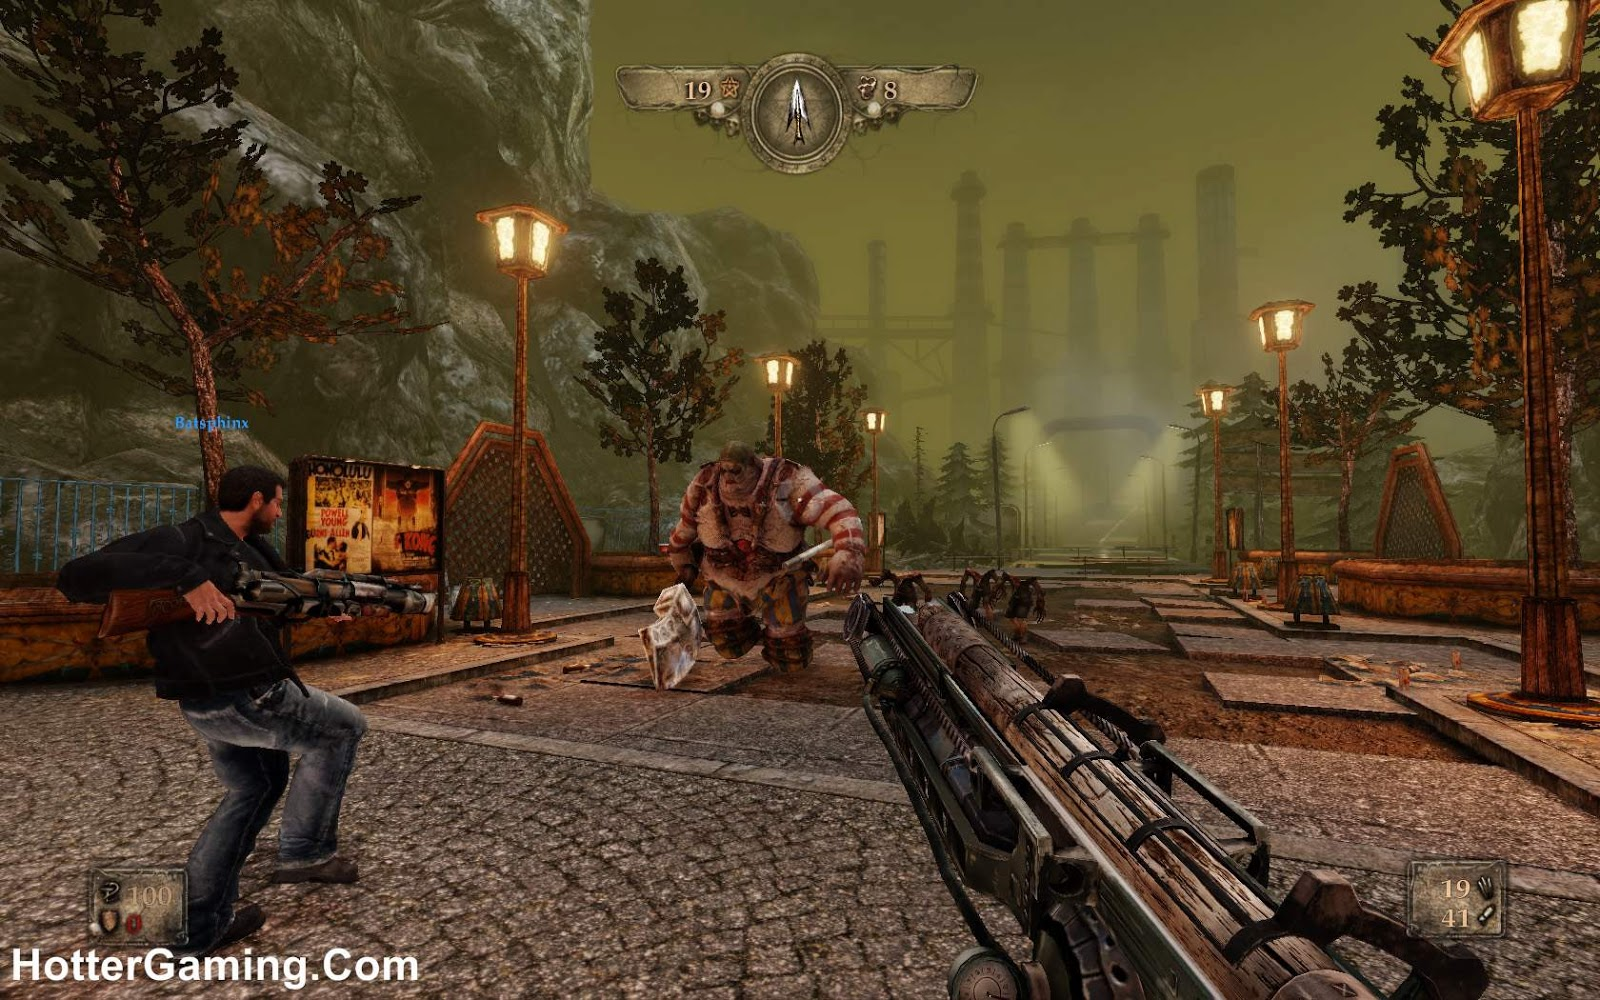 Painkiller: hell  damnation (playstation 3) review - push square